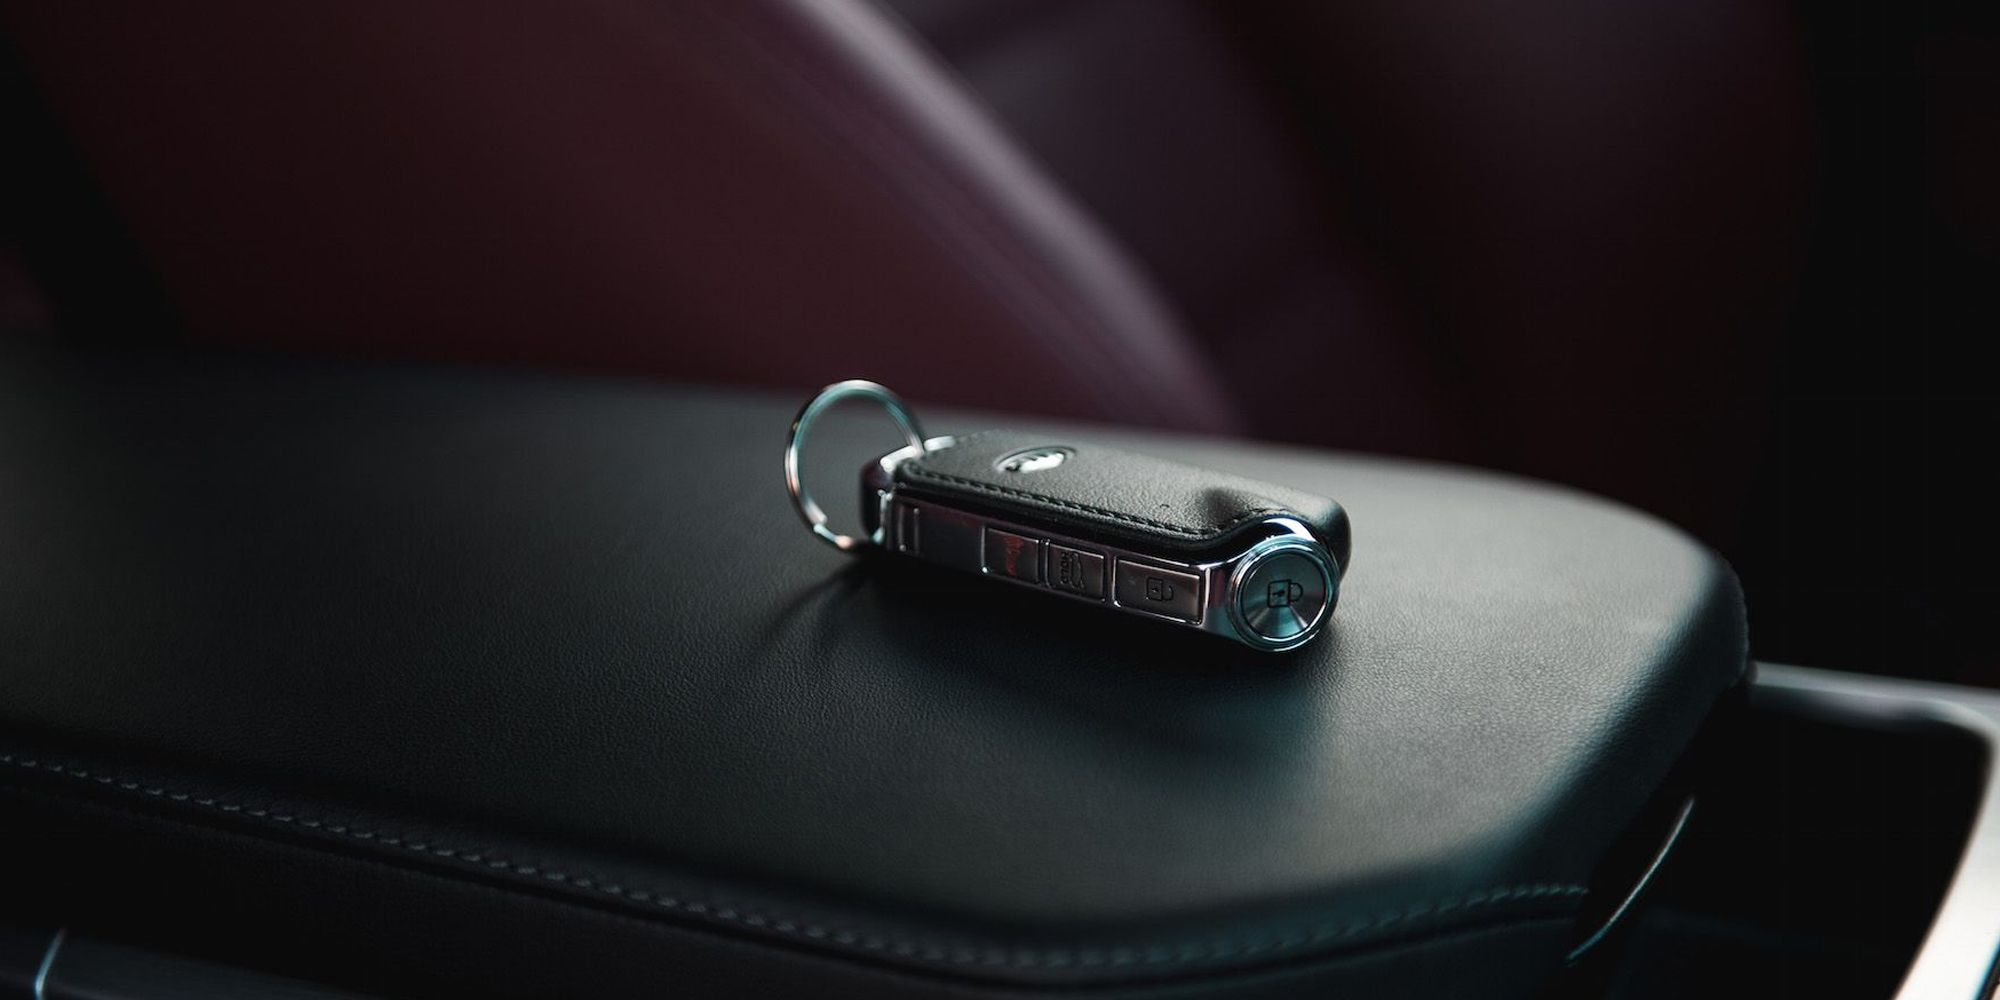 10 Of The Coolest Car Key Fobs We've Ever Seen | HotCars